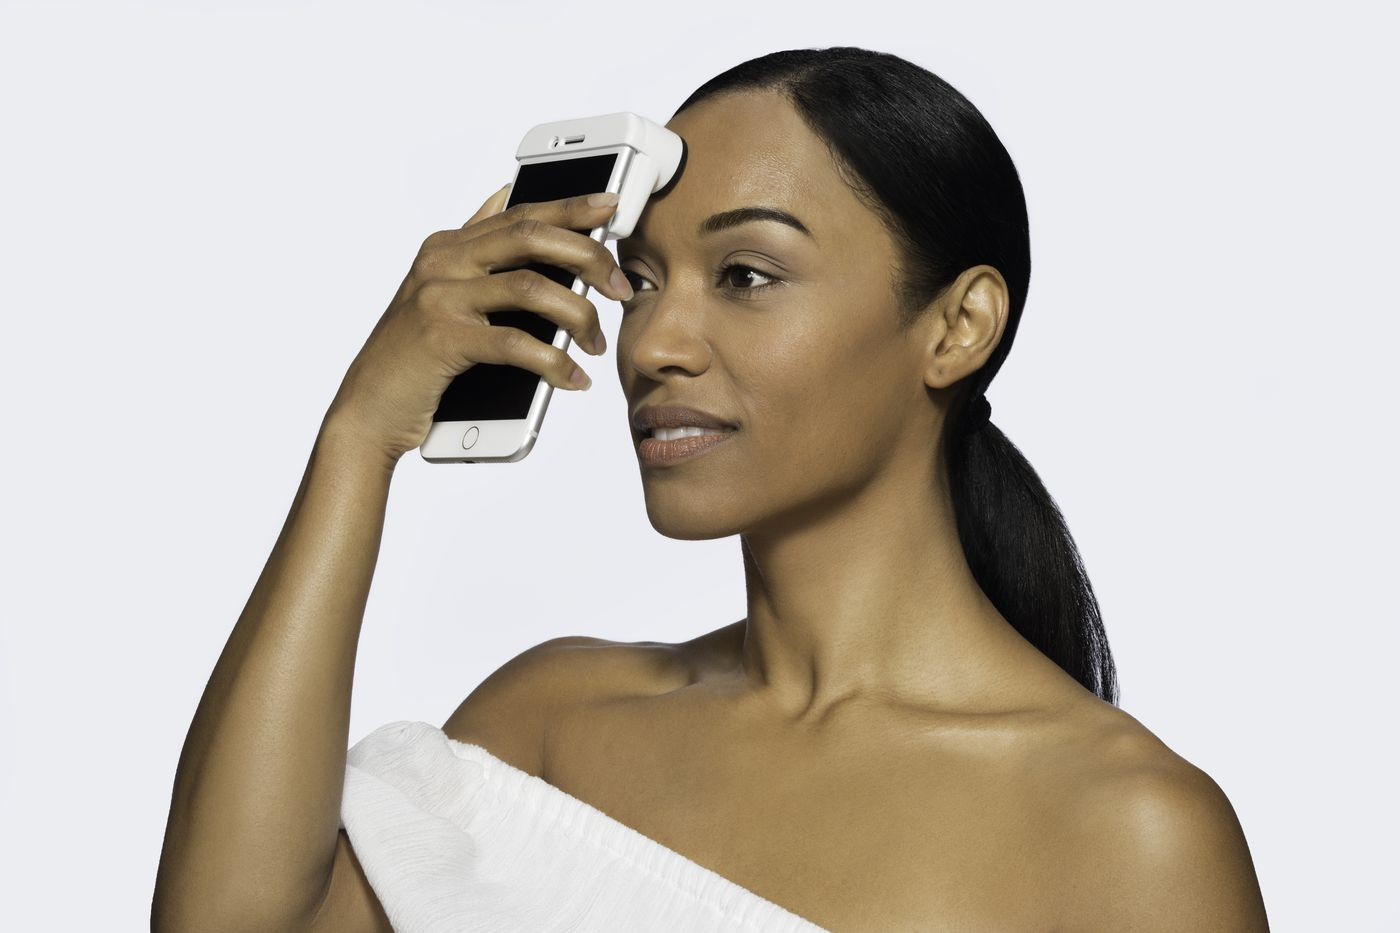 Neutrogena has made an iPhone scanner that magnifies your